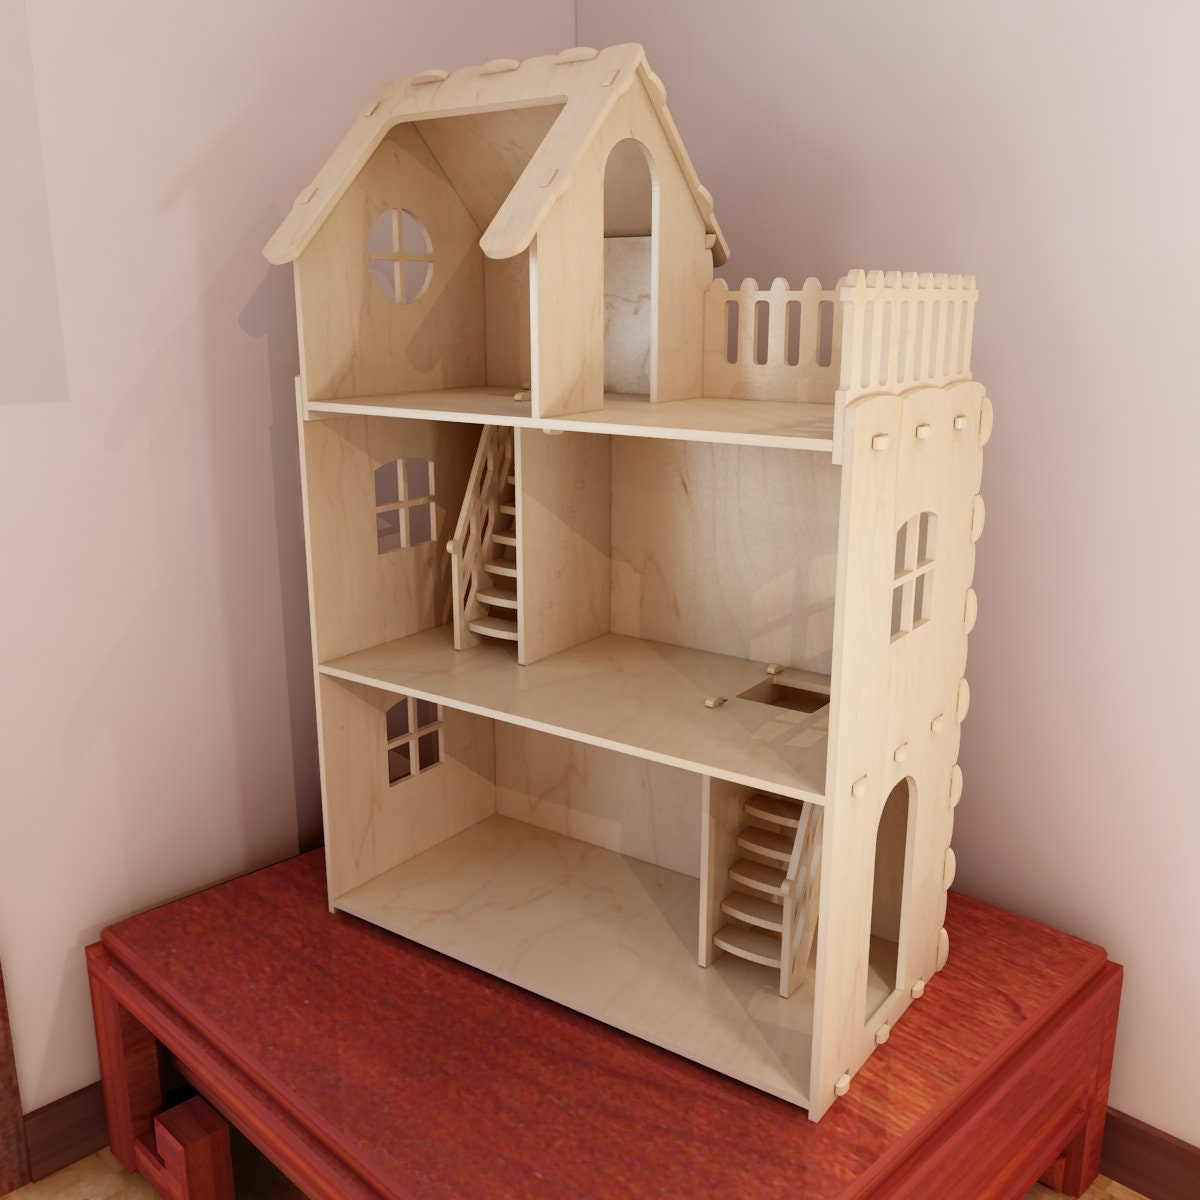 Groovy Big Plywood Doll House V1 1 6 Scale Vector Model For Cnc Router And Laser Cutting Barbie Size Dollhouse 6Mm Plywood Download Free Architecture Designs Scobabritishbridgeorg